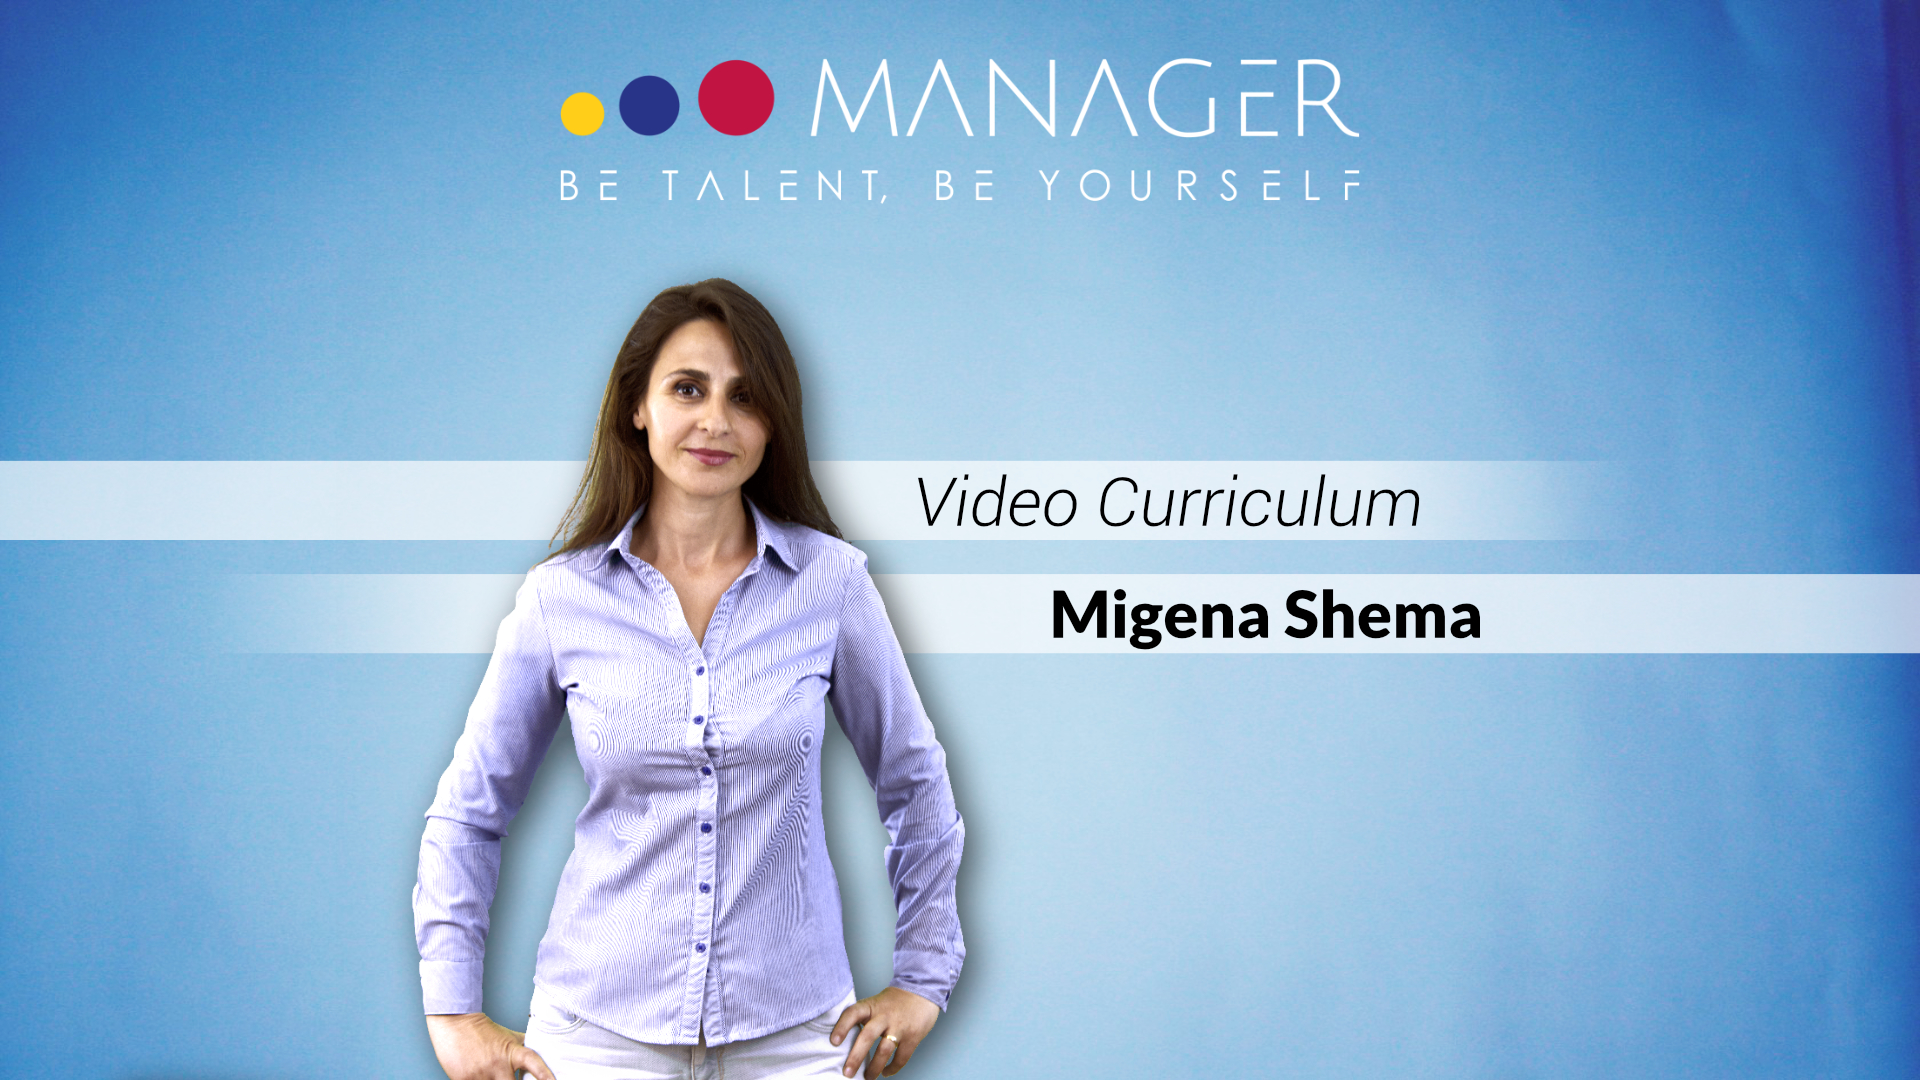 Video curriculum di Migena Shema